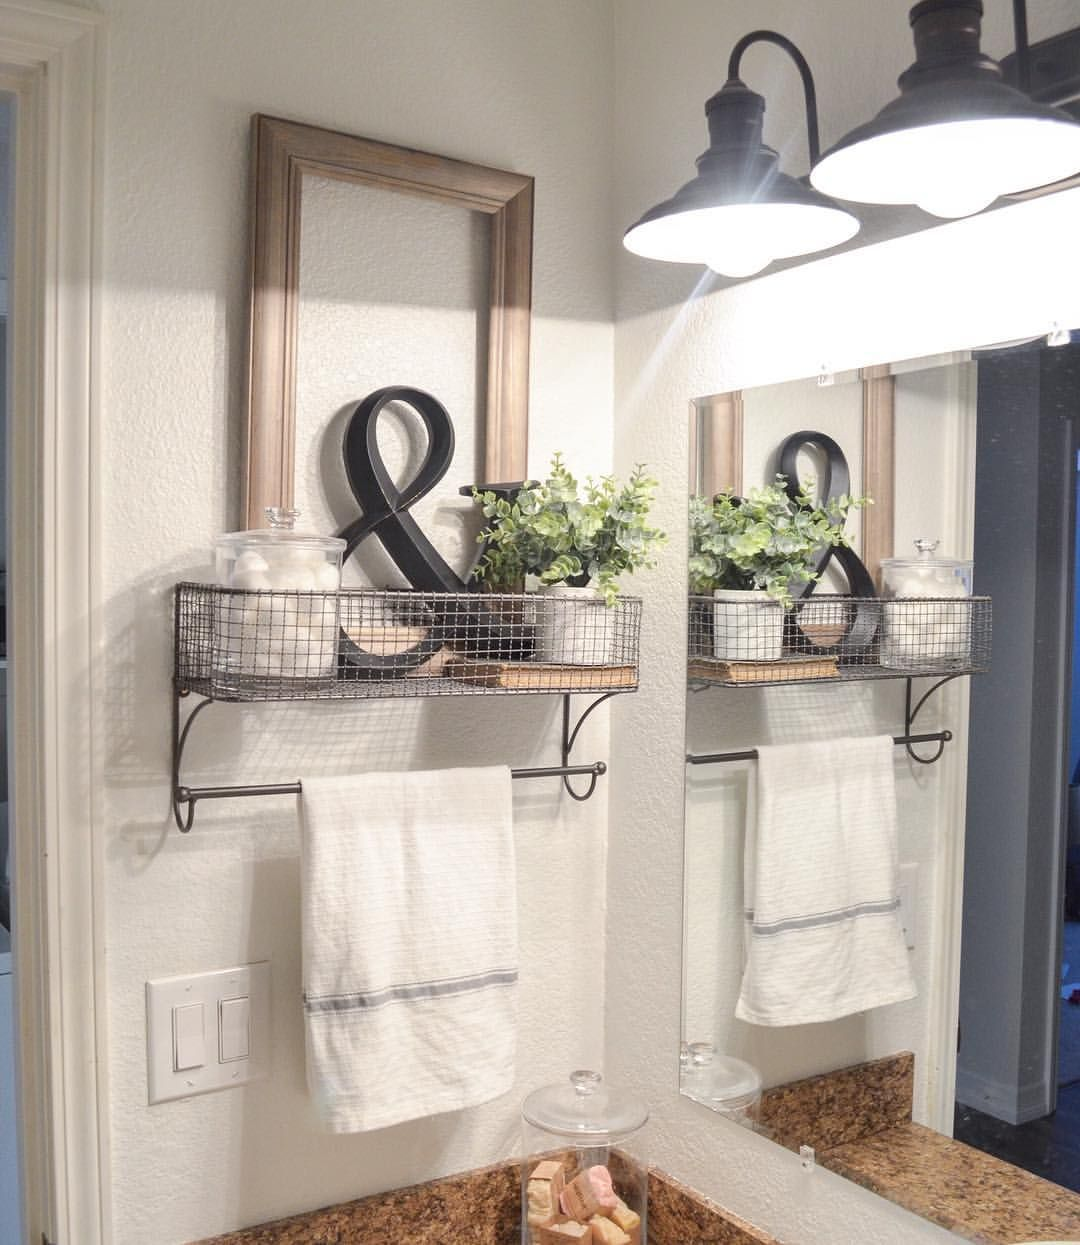 6 Ideas On How To Display Your Home Accessories: Check Hobby Lobby For Similar Rack